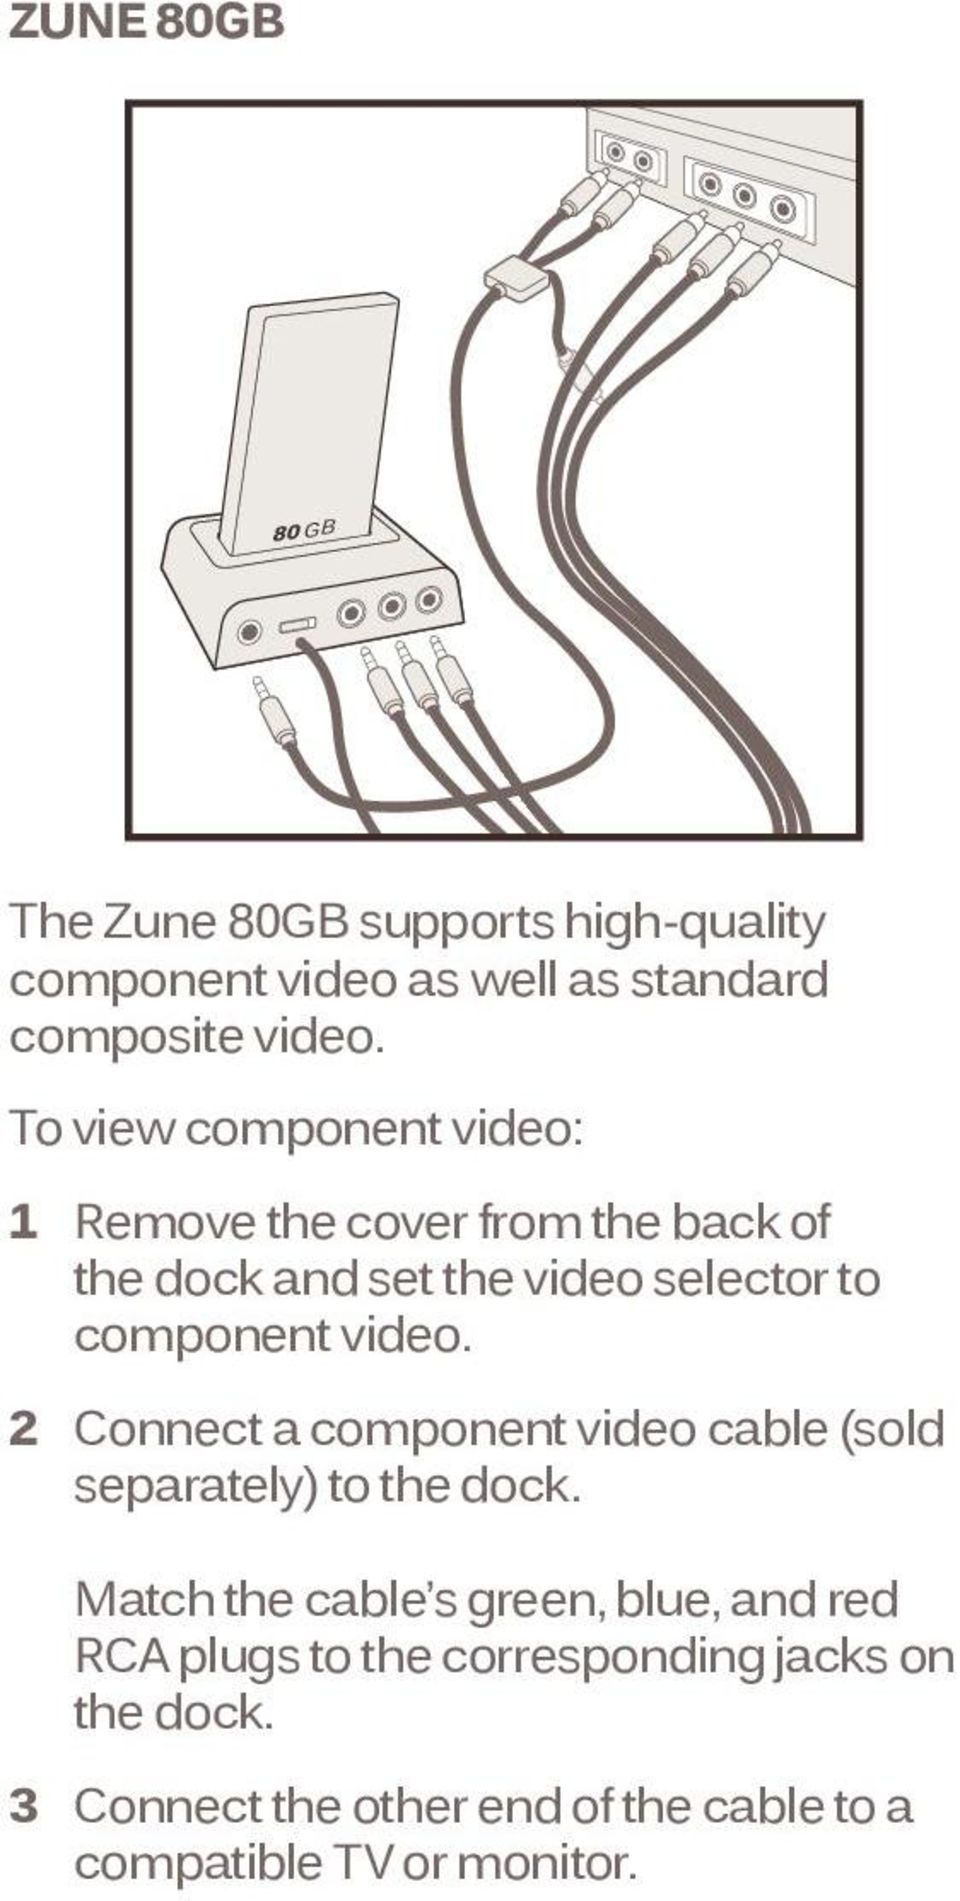 video. 2 Connect a component video cable (sold separately) to the dock.